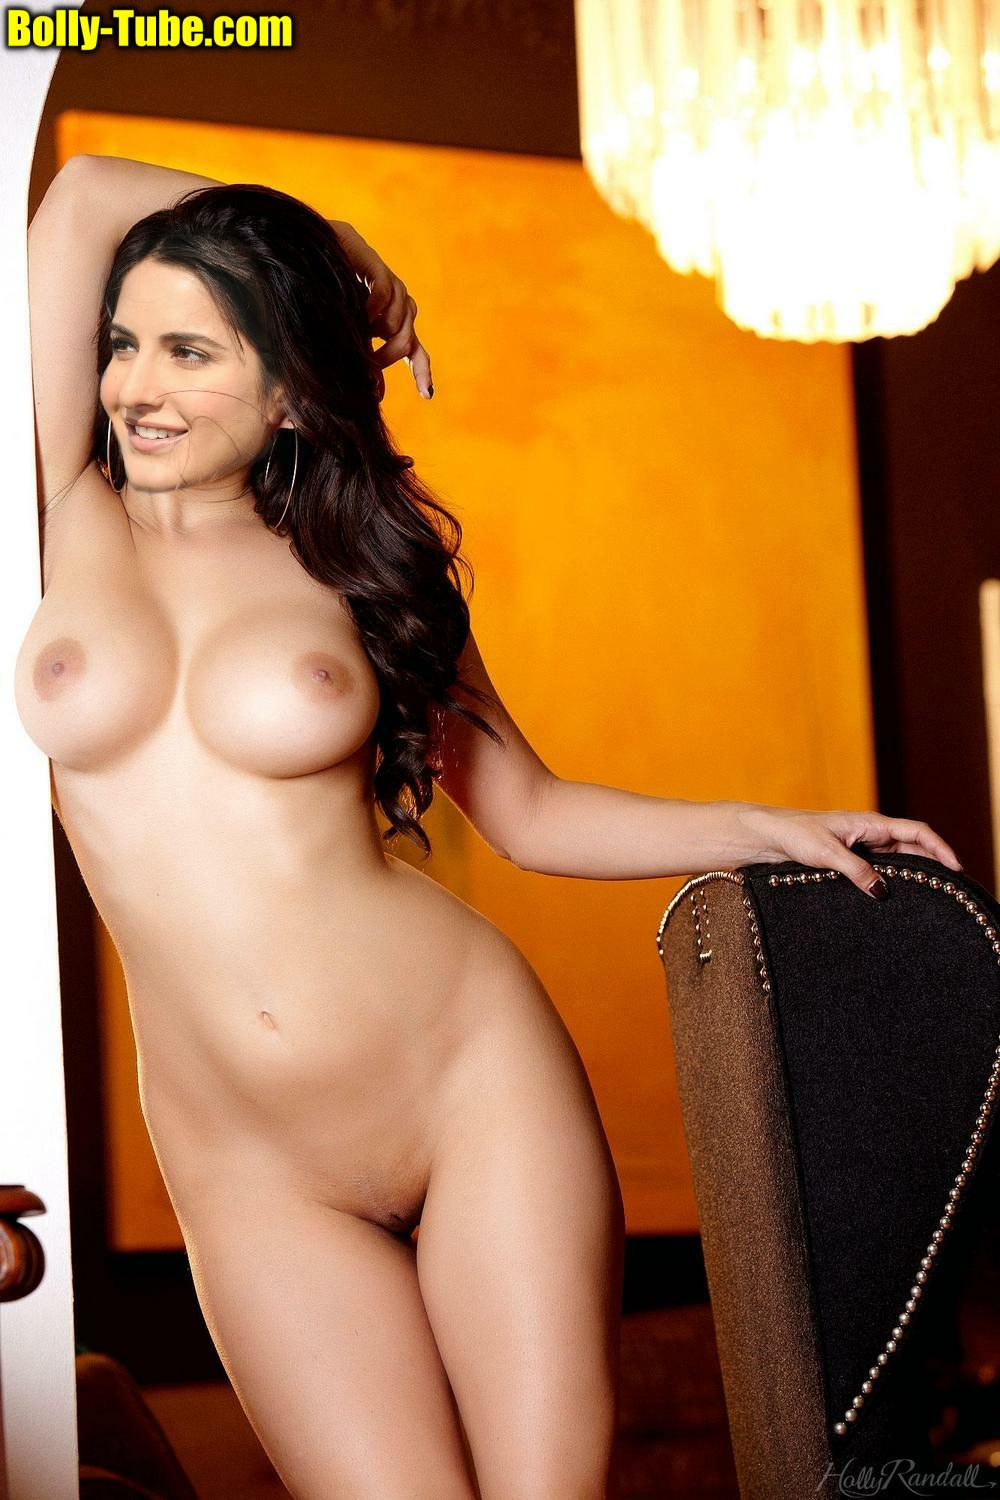 Katrina Kaif naked slim bdy shaved pussy nude navel xxx bollywood actress